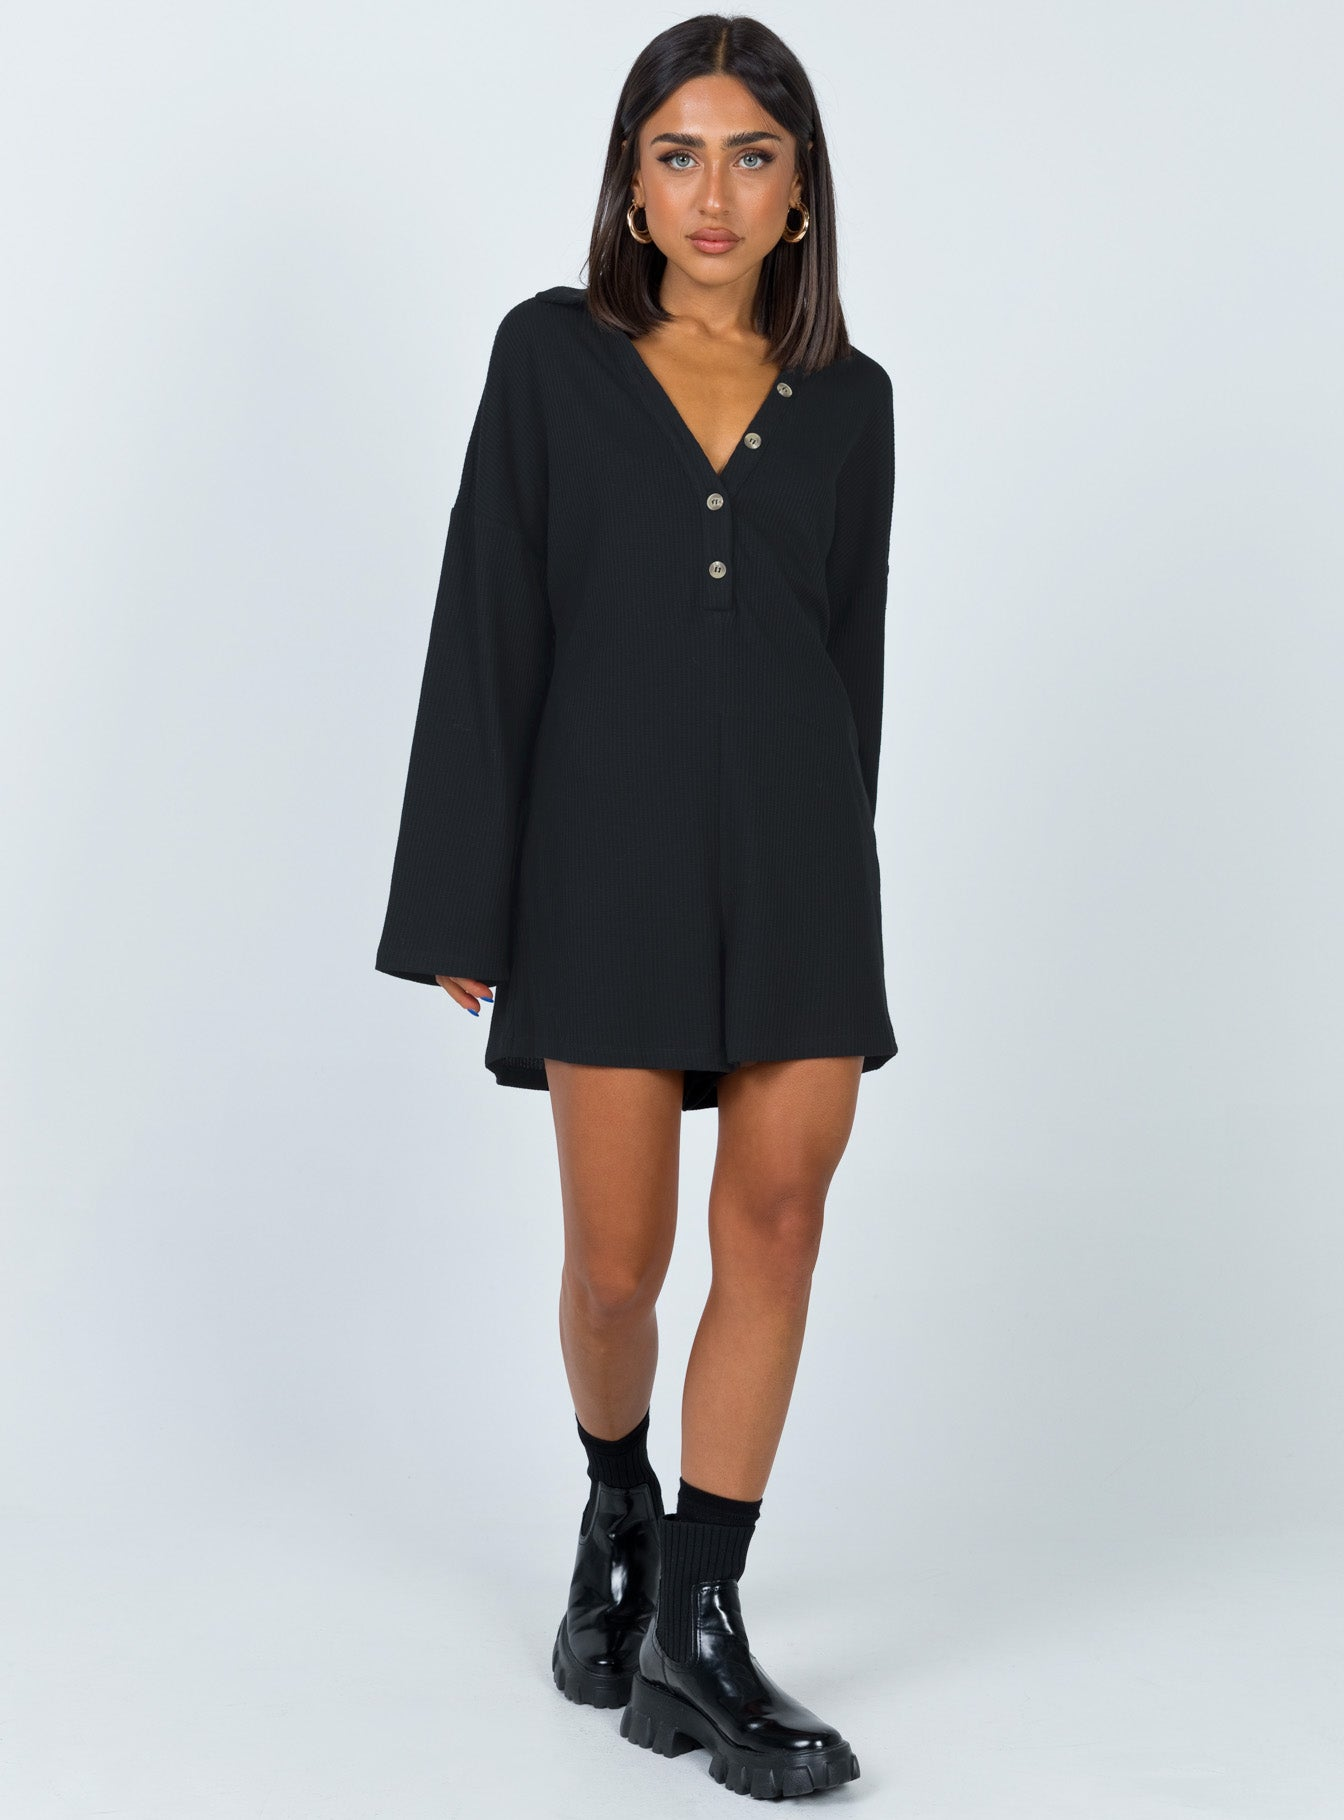 Kegan Long Sleeve Romper Black